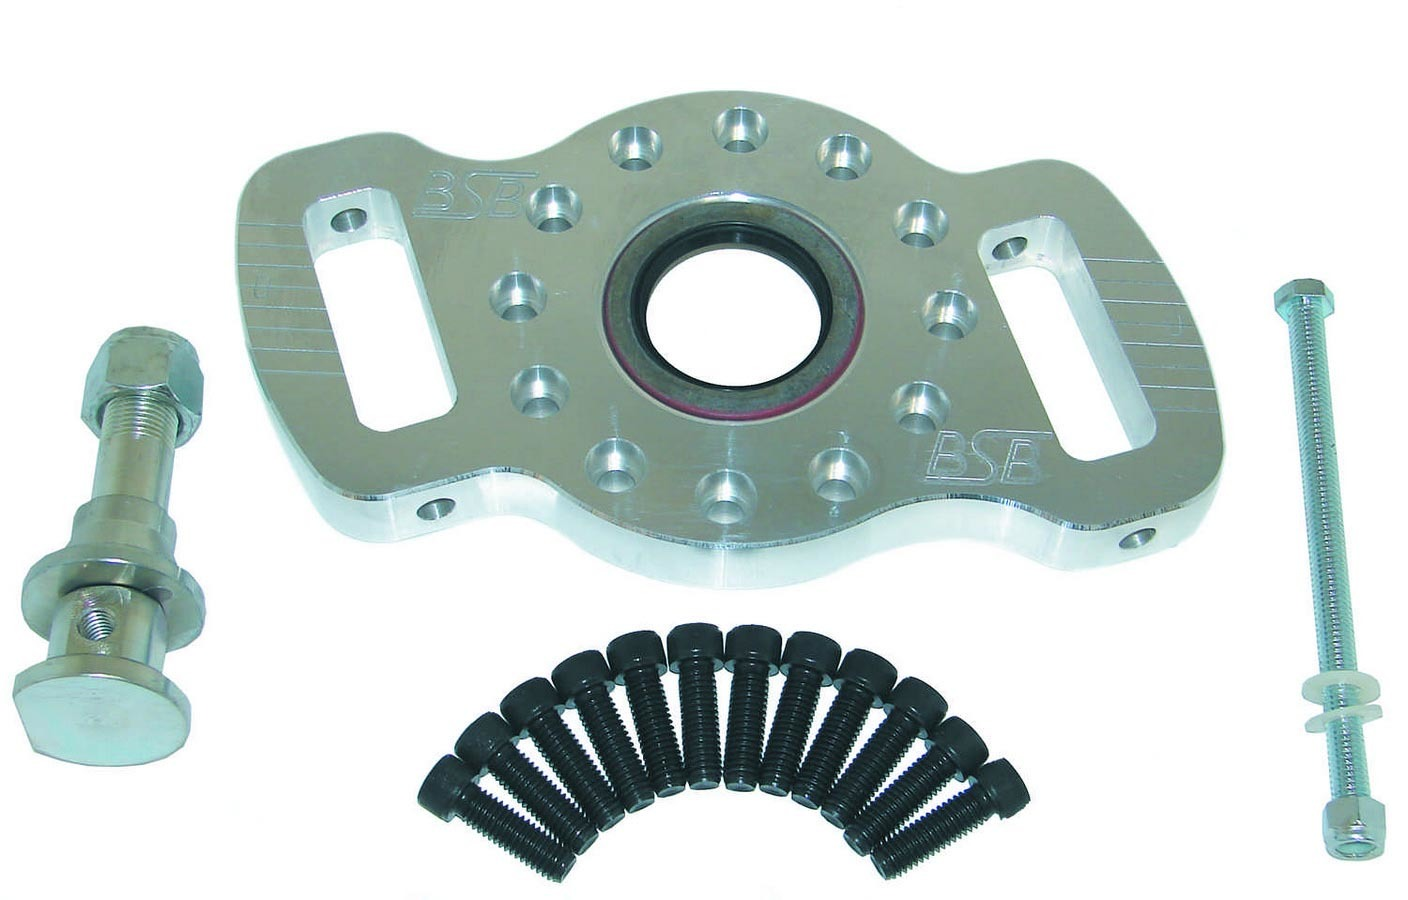 Pinion Bracket Aluminum Dbl. Sided Adjustable